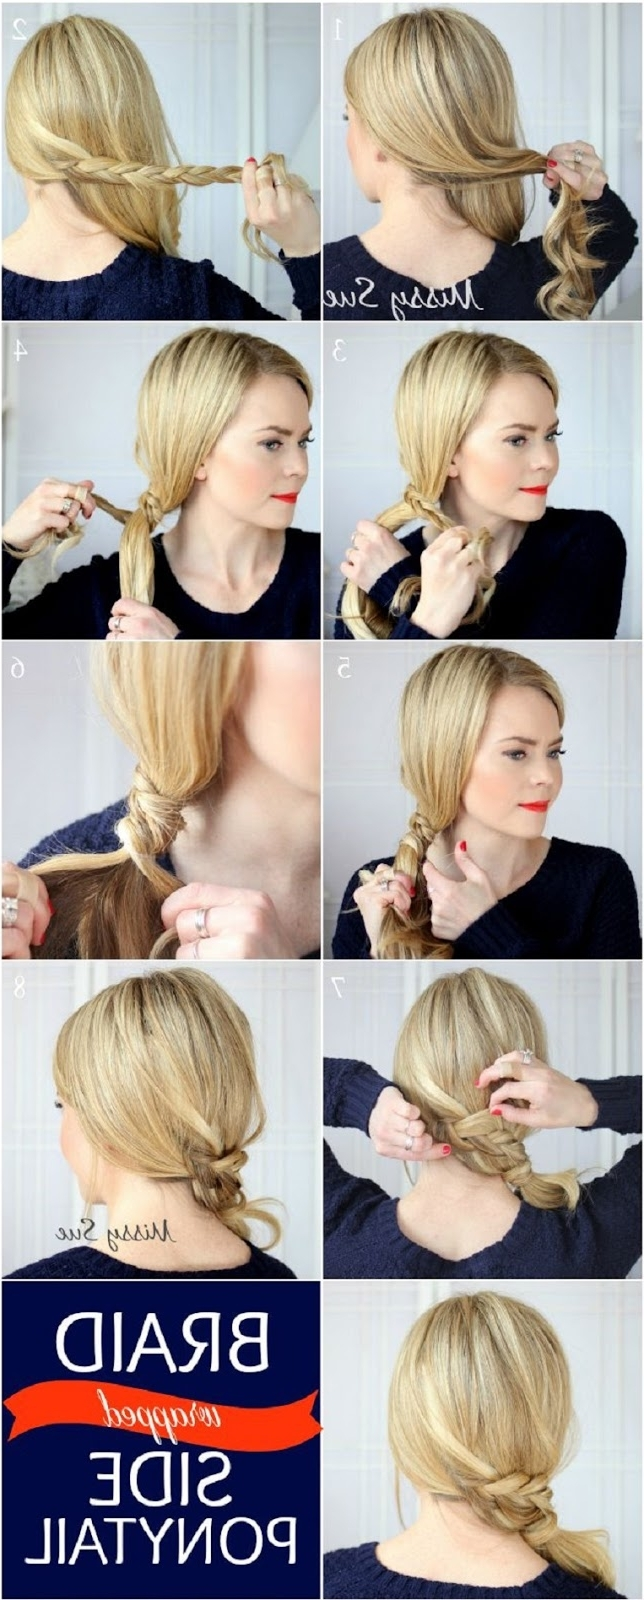 Braid Tie Of Ponytail Hairstyles Stepstep ~ Entertainment News In Most Recent Double Tied Pony Hairstyles (View 18 of 20)